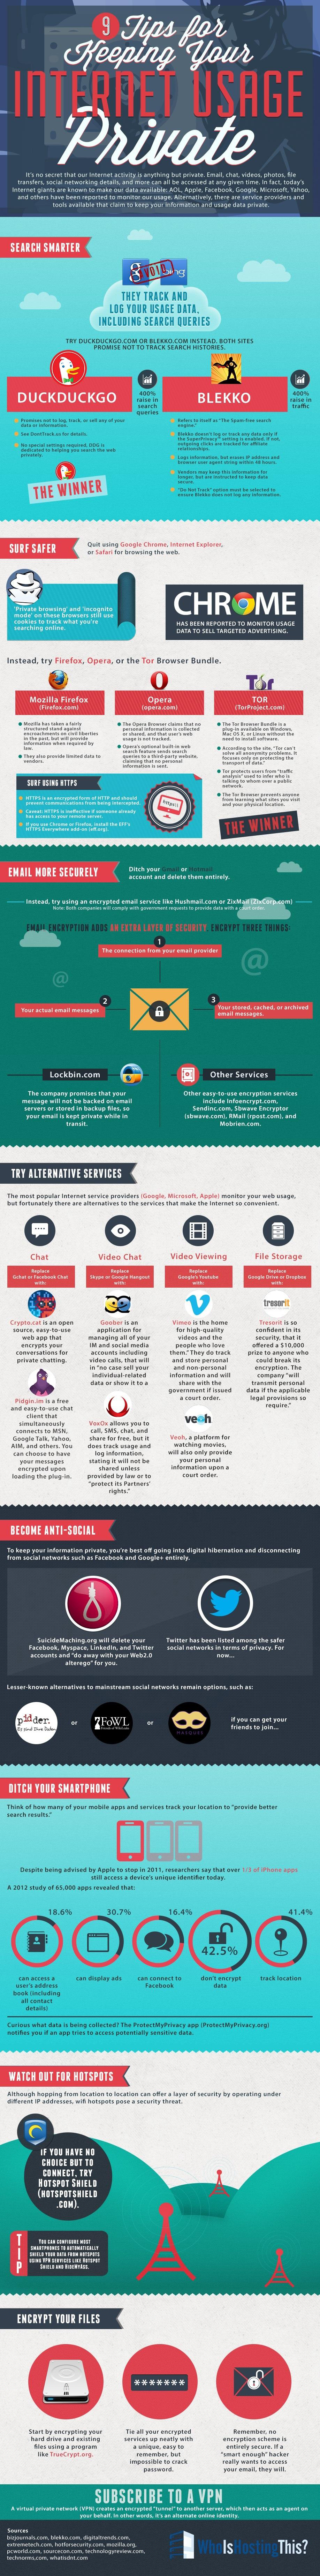 Infographie 62 - keep-internet-use-private-infographic